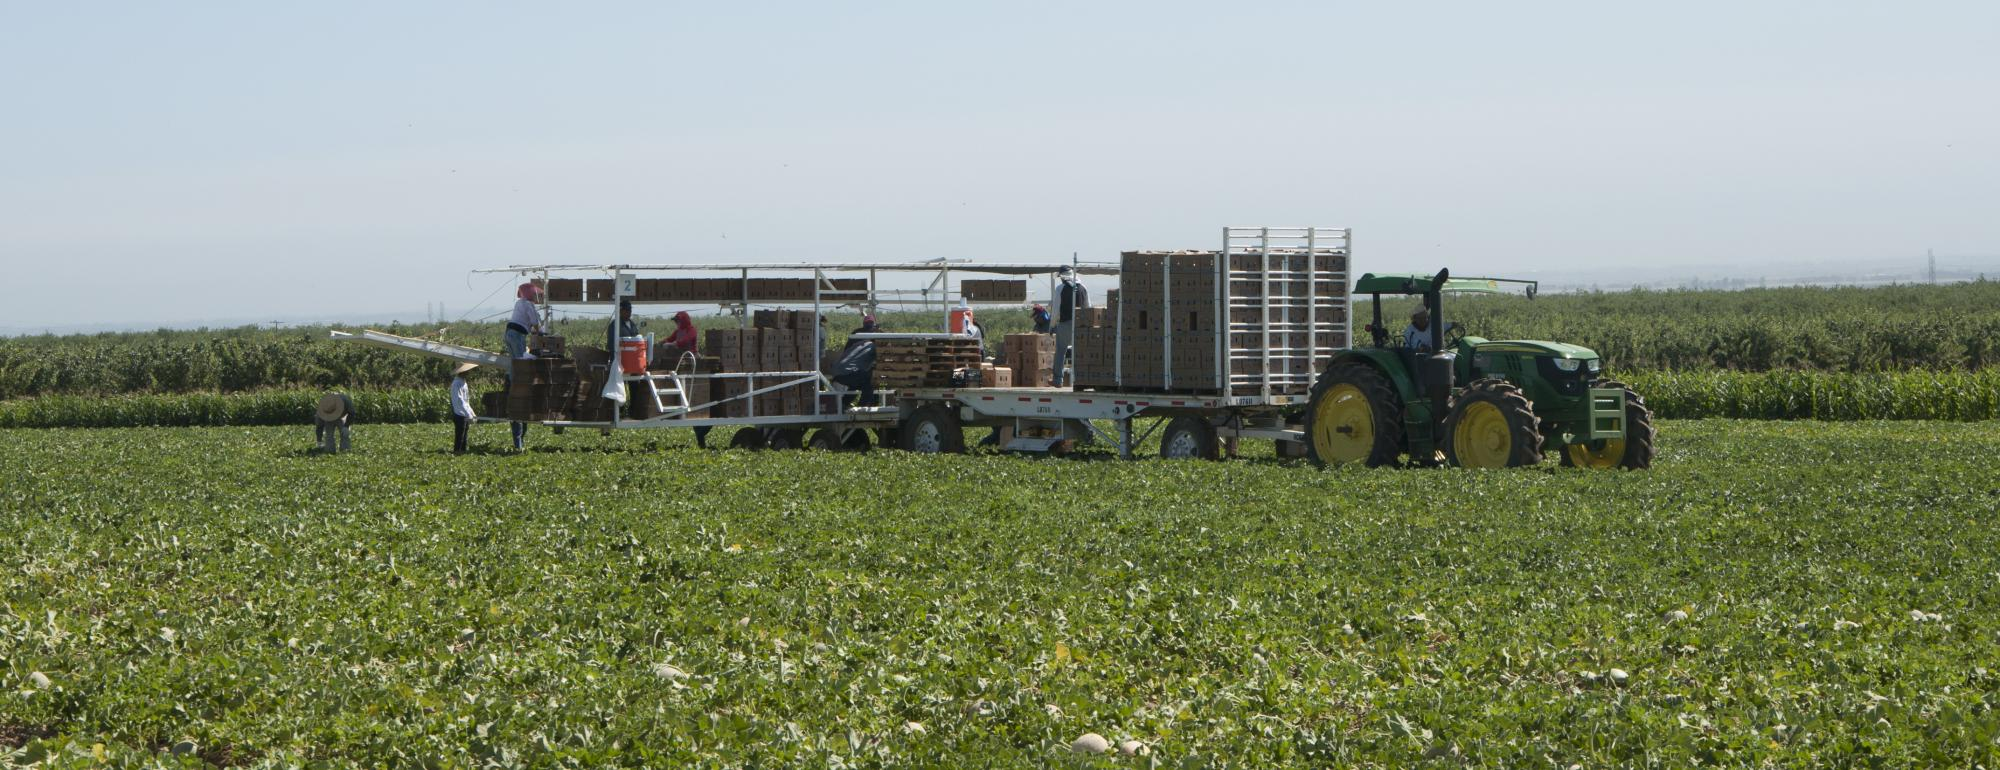 Farmworkers harvesting melons and packing them into boxes on a specialized truck in the fields